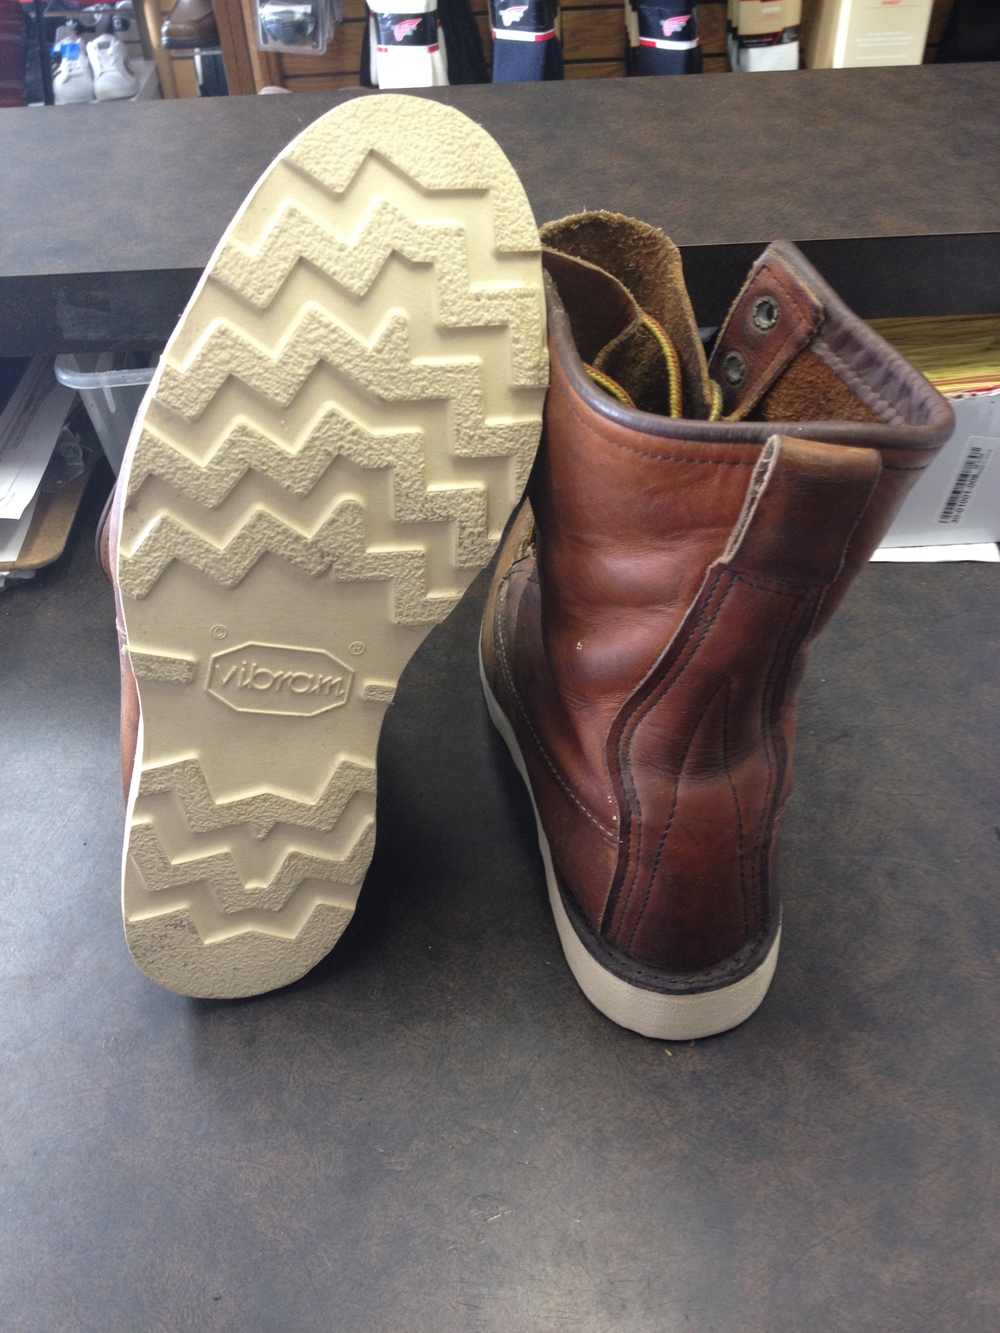 Pair of 10877 resoled, colored, conditioned, and relaced.